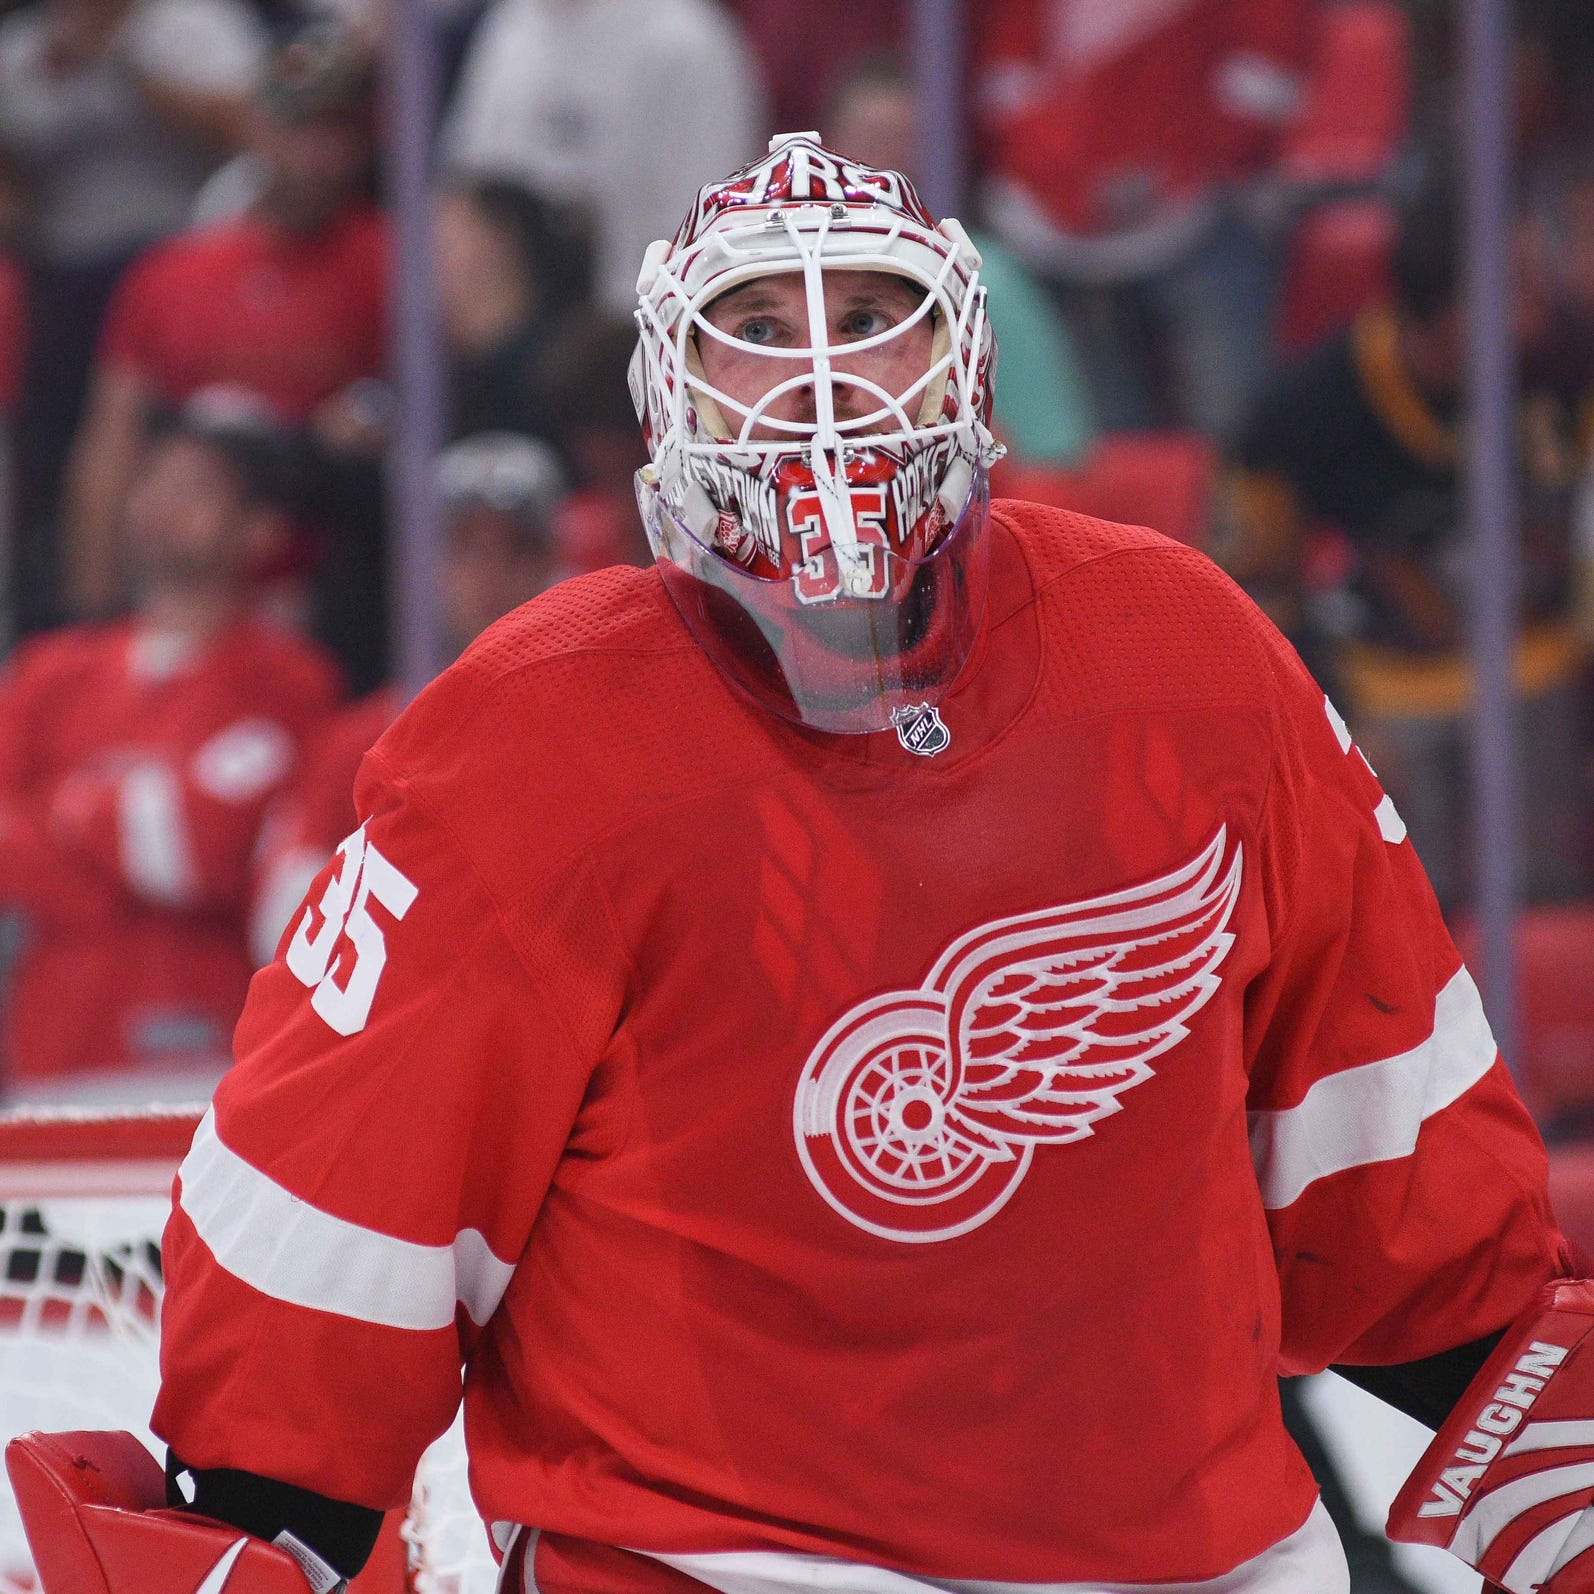 Game thread: Red Wings win exhibition, 4-2